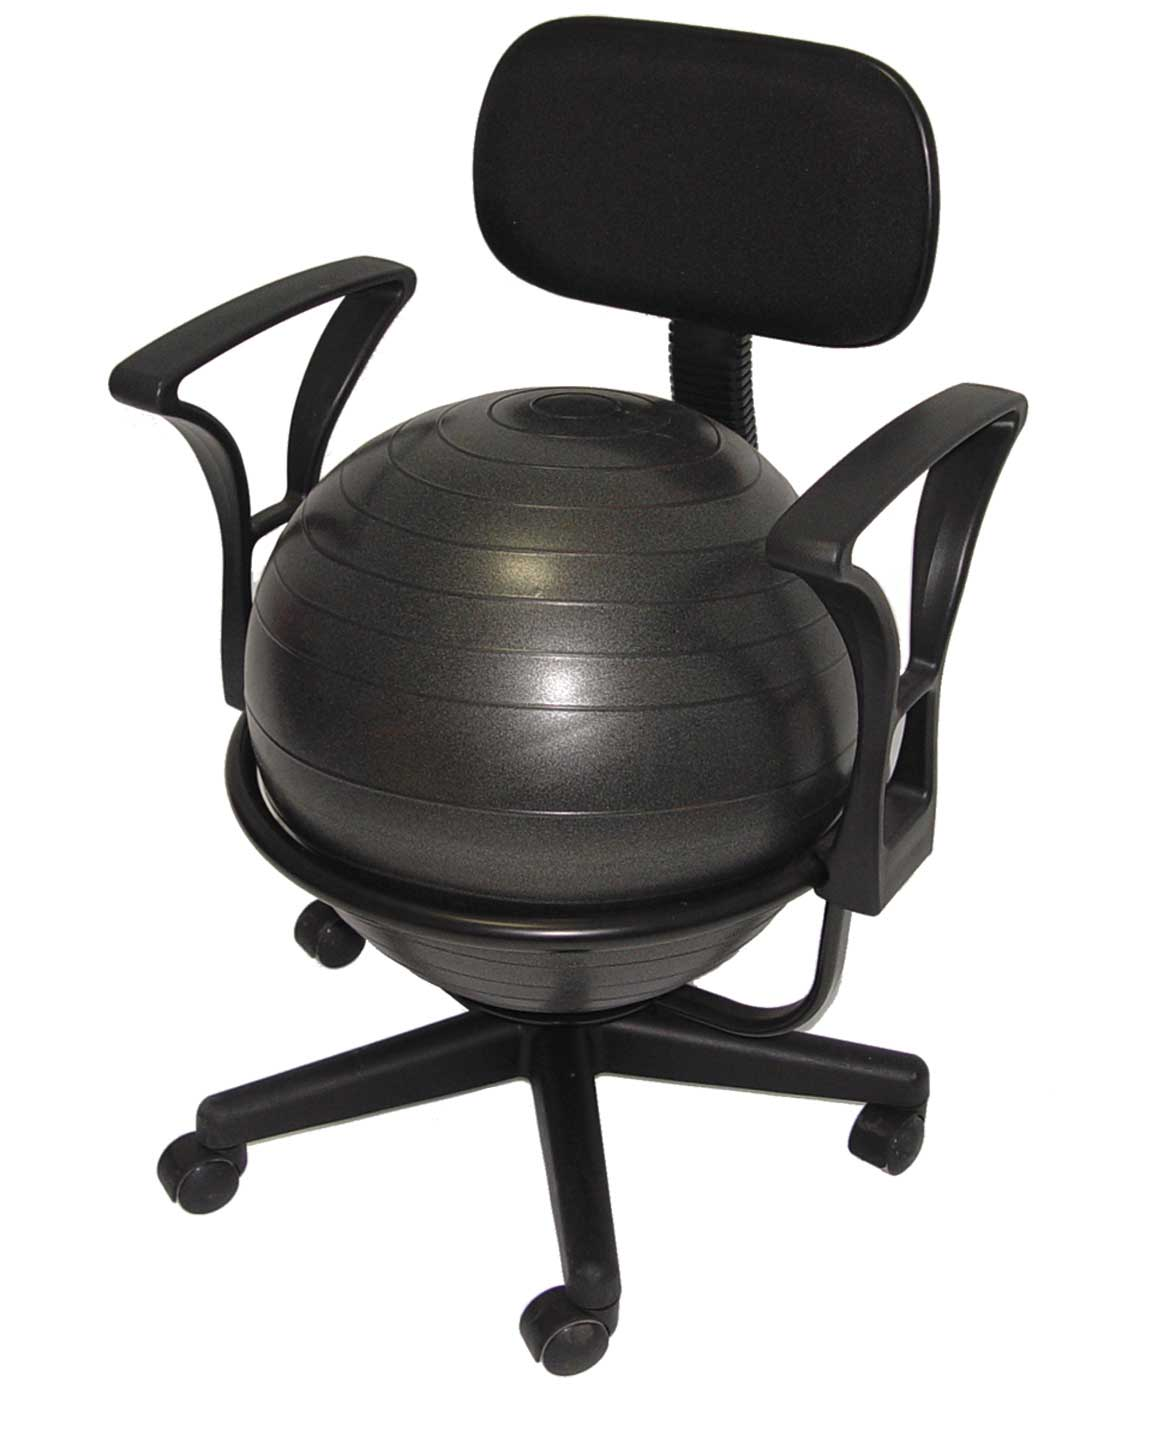 yoga ball chair reviews plush animal ergonomic for office